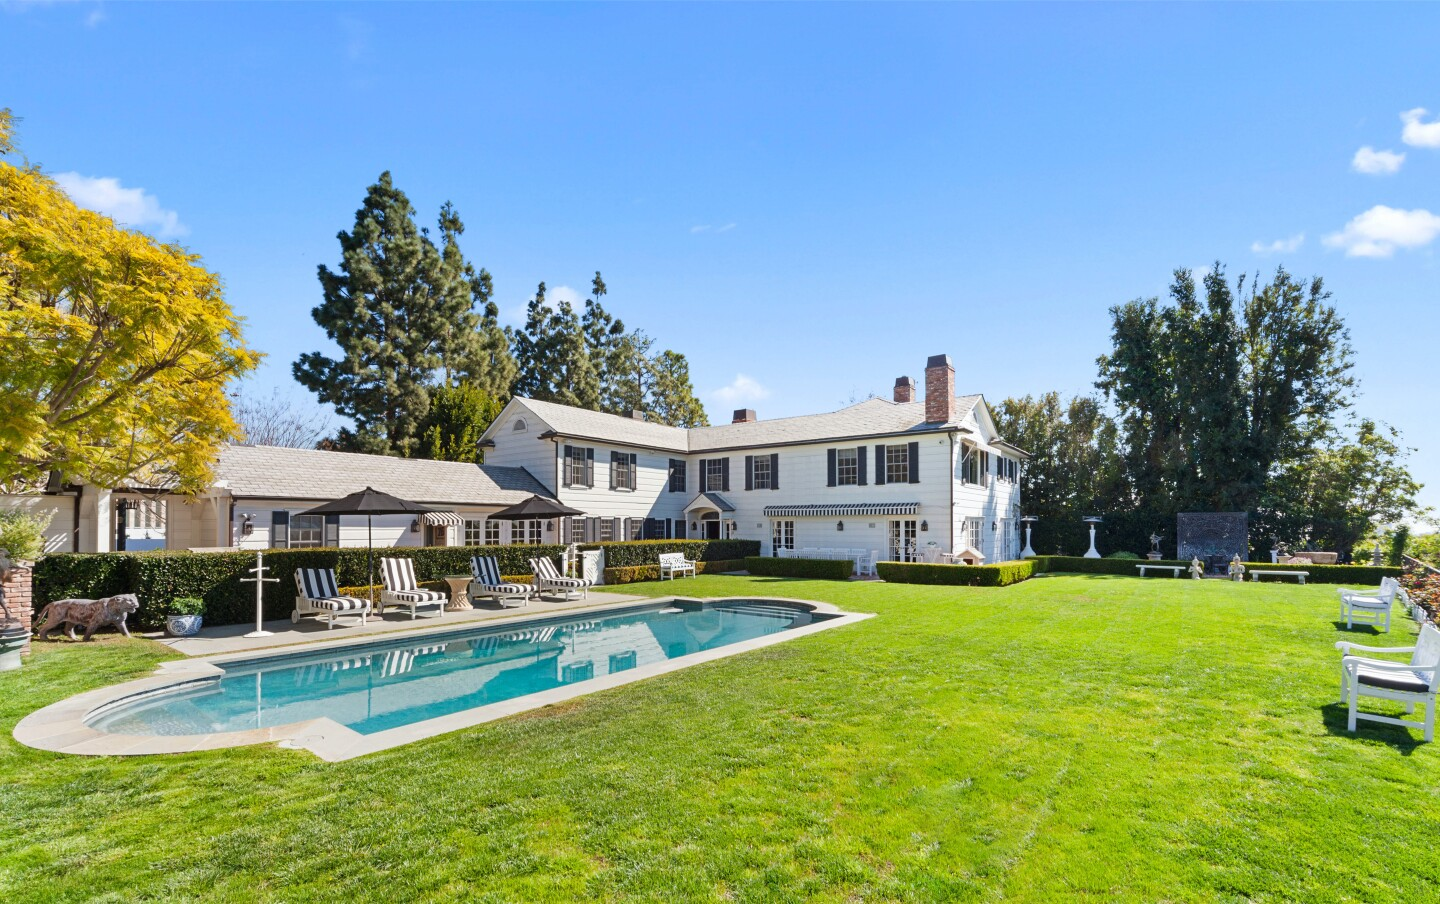 The cul-de-sac compound includes a 1930s home, two-story guesthouse, swimming pool and tiered garden overlooking the Bel Air Country Club golf course.